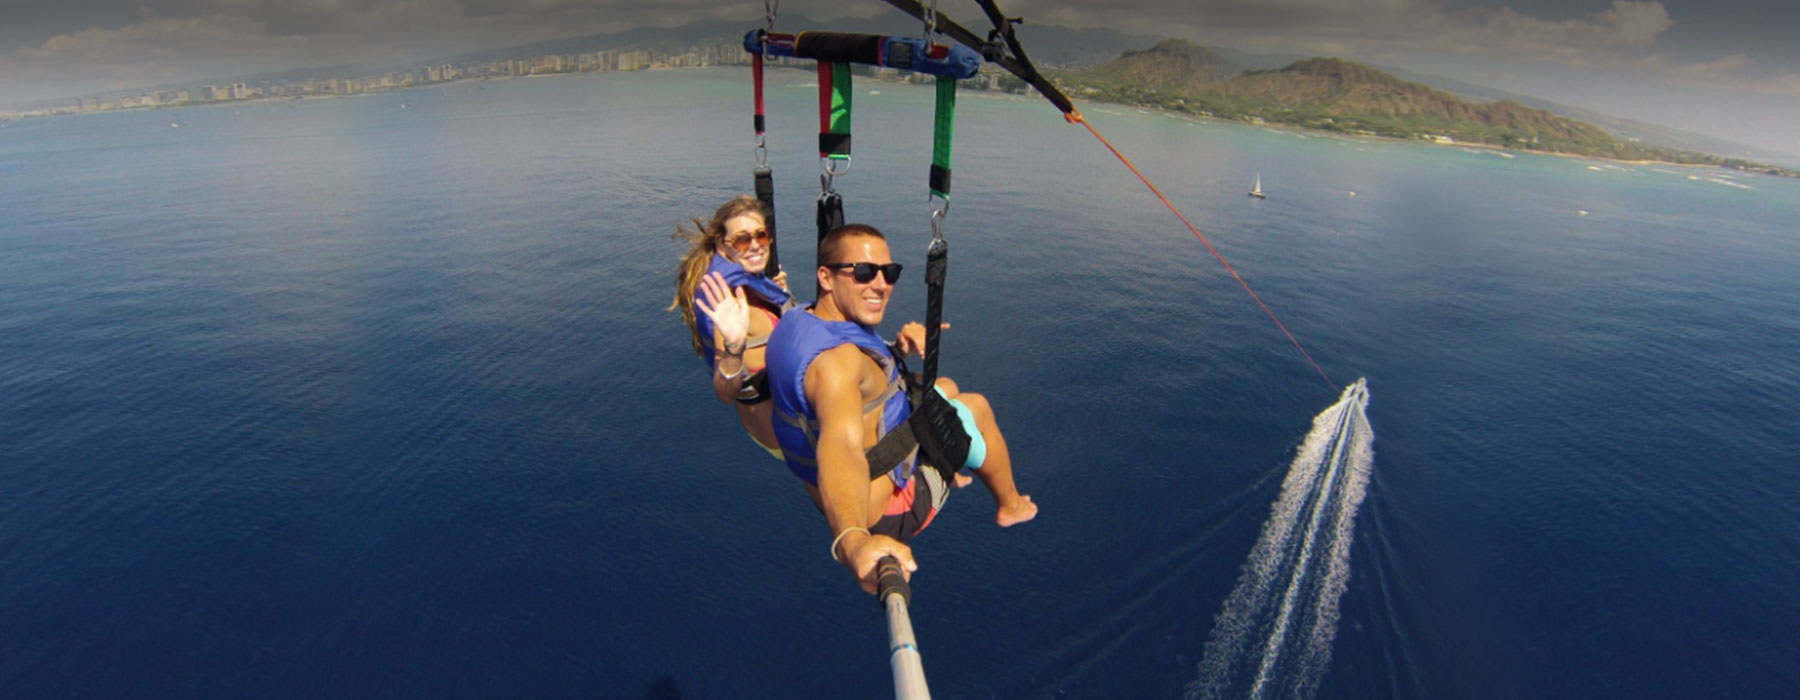 Soar above Honolulu's coastline!